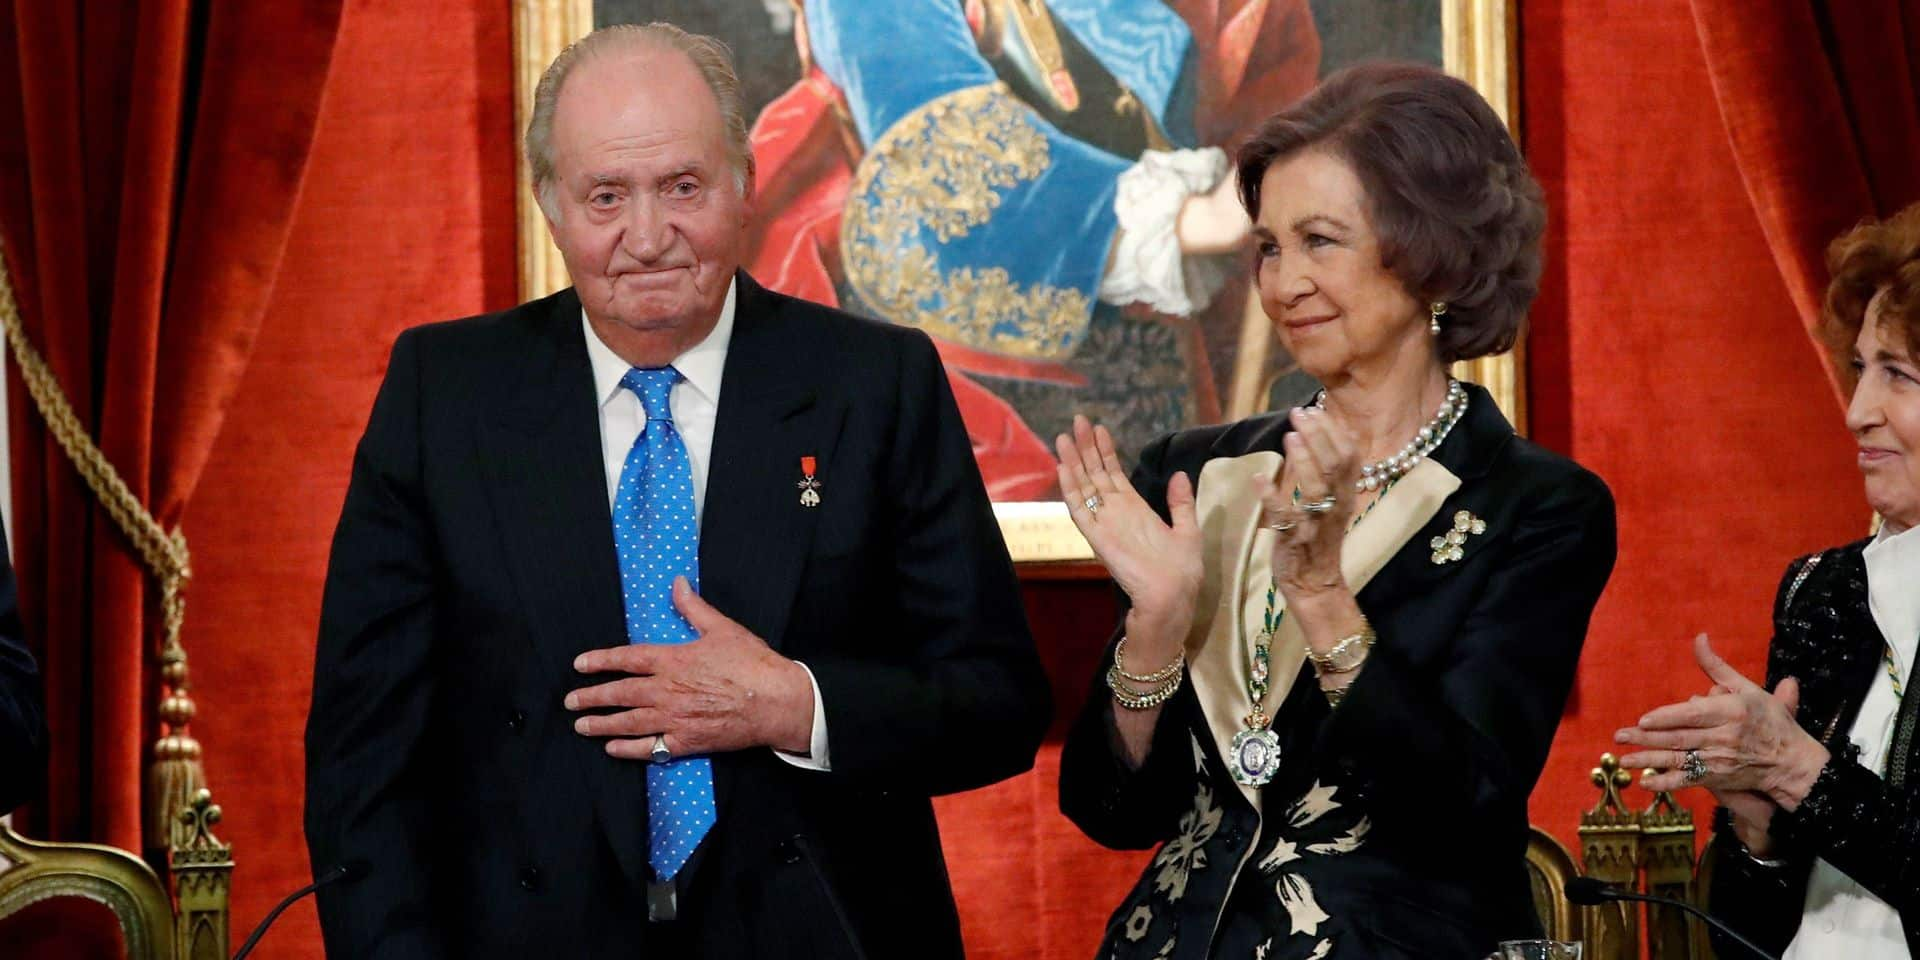 King Juan Carlos and Queen Sofia attend an act by the Spanish Royal History Academy in Madrid, Spain